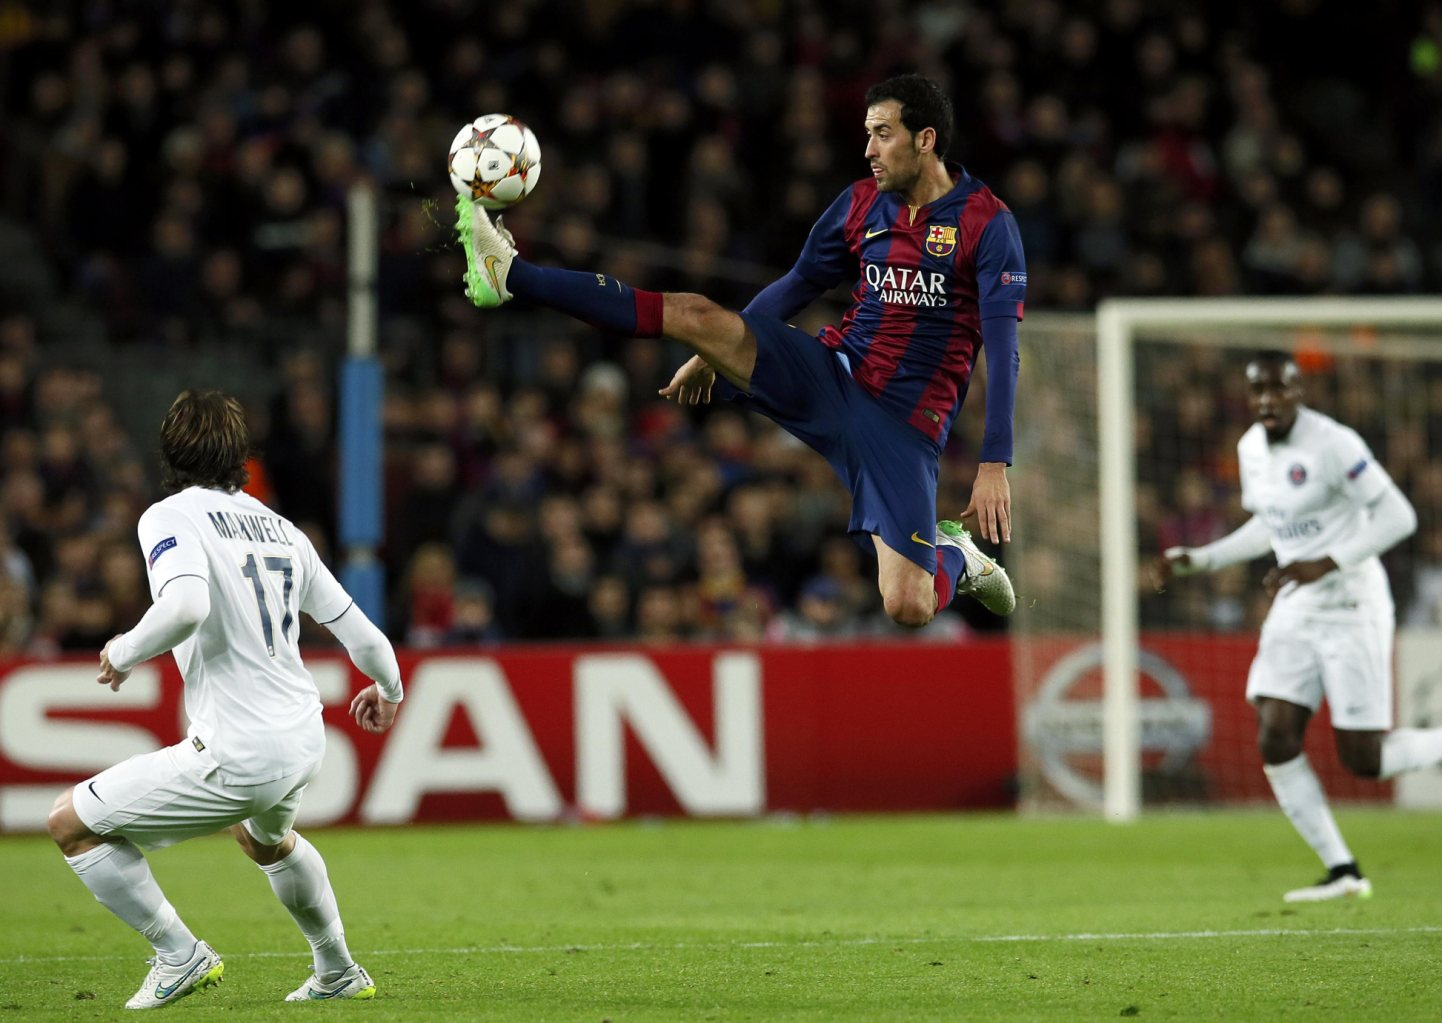 Sergio Busquets ball control in the air